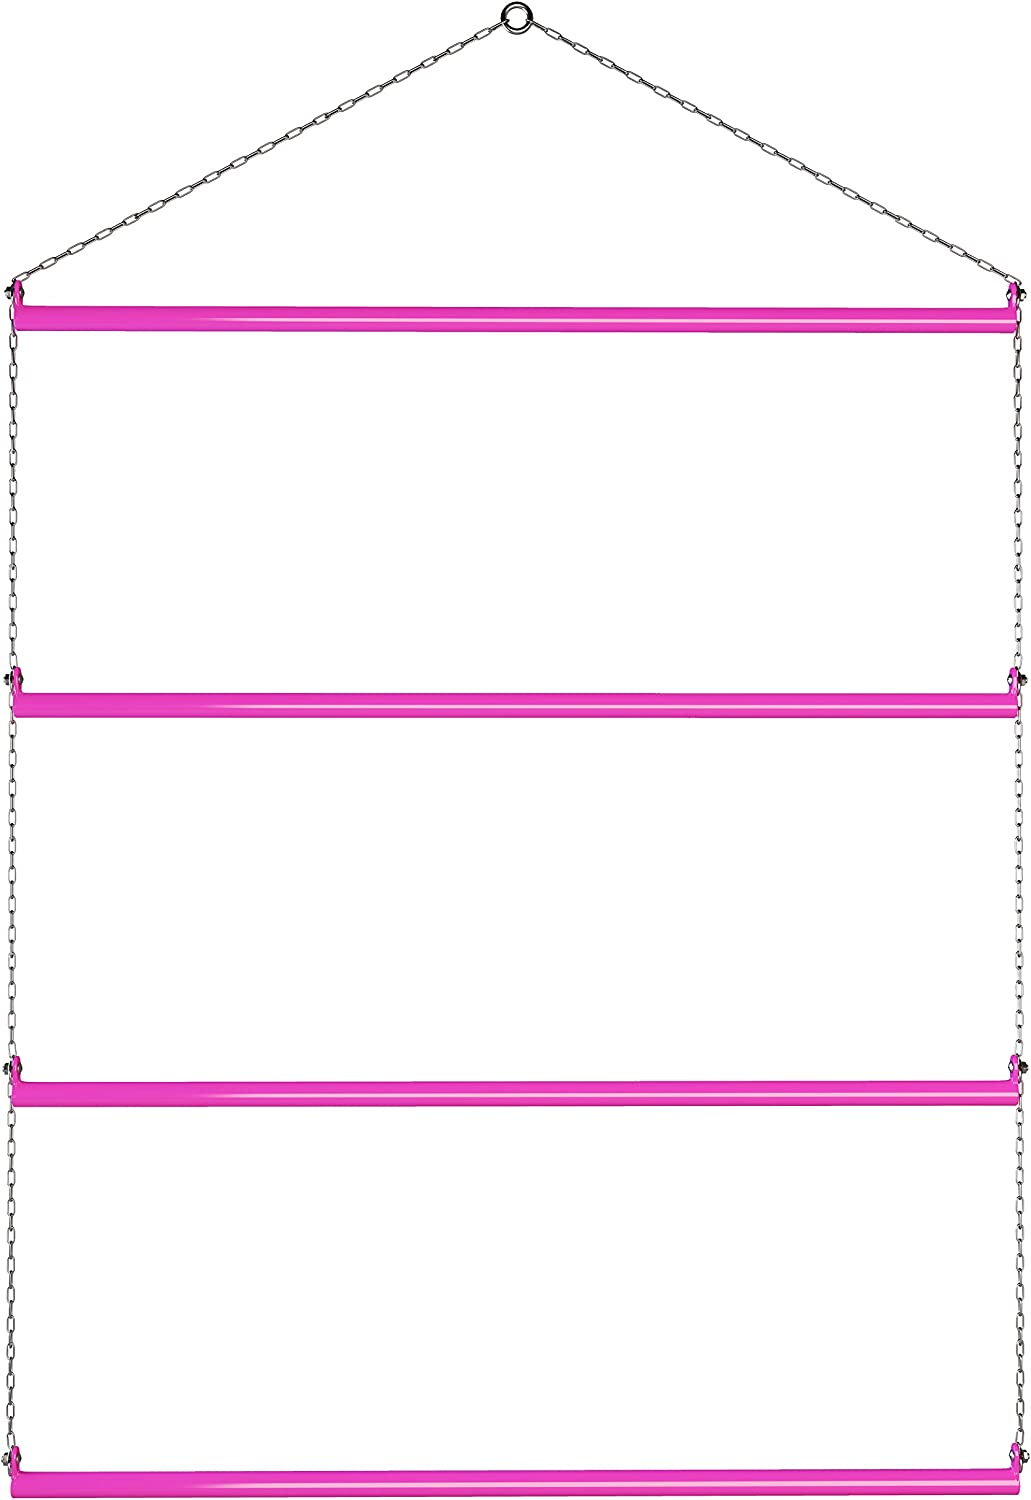 Echo Beach Equestrian Blanket Rack 33  (Pink). Available in Black, bluee, Red & Pink. Suitable for Horse Blankets, Saddle Blankets and Rugs. Extra Long for Western Saddle Blankets and Horse Blankets.